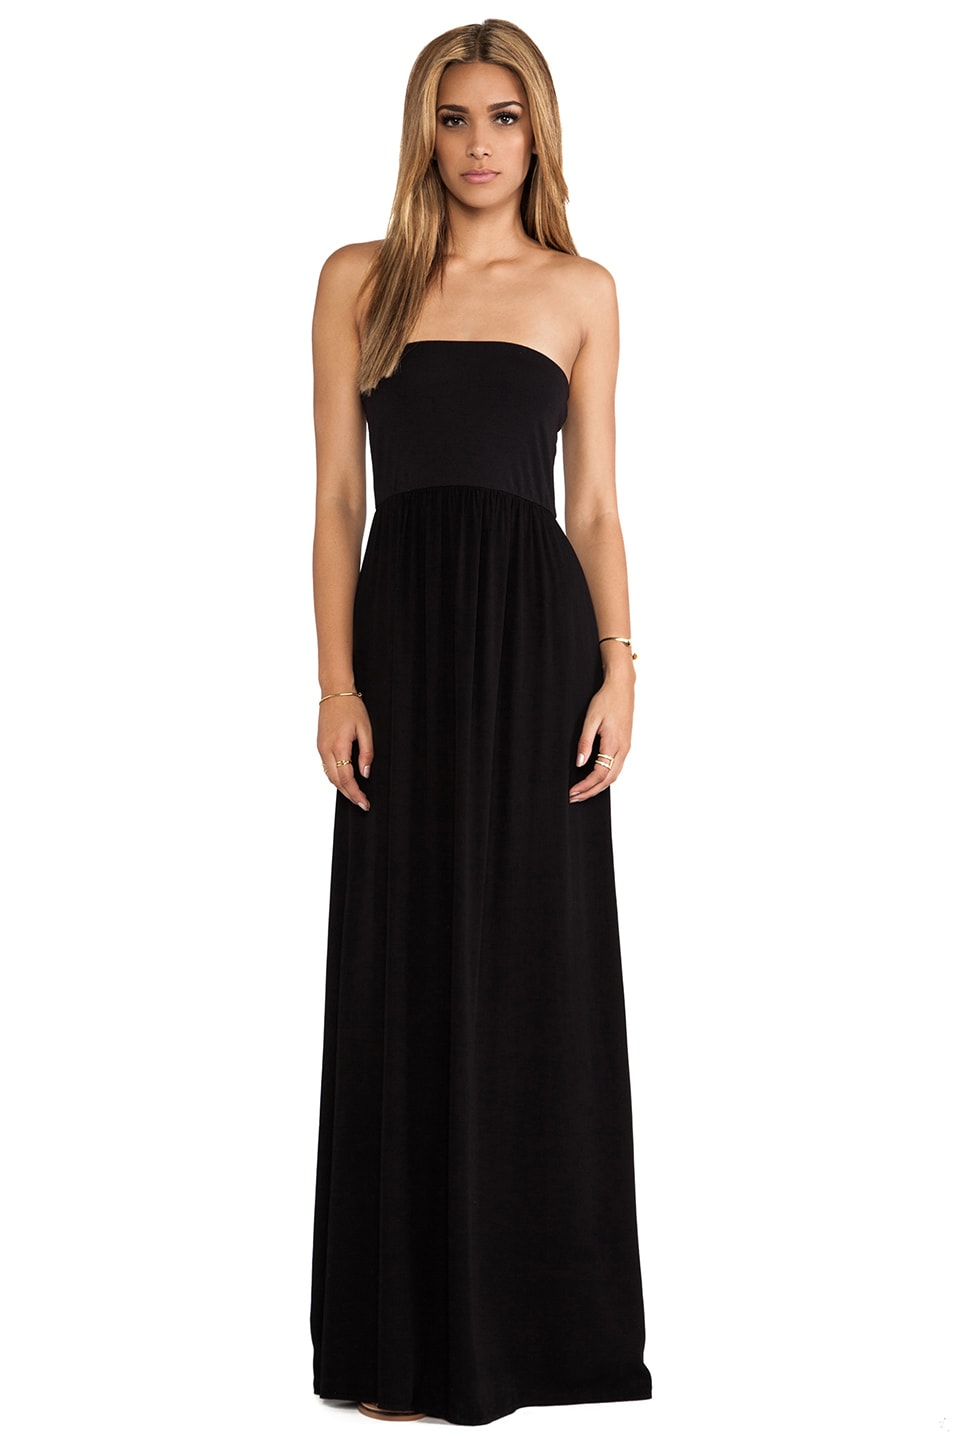 Splendid Strapless Maxi Dress in Black